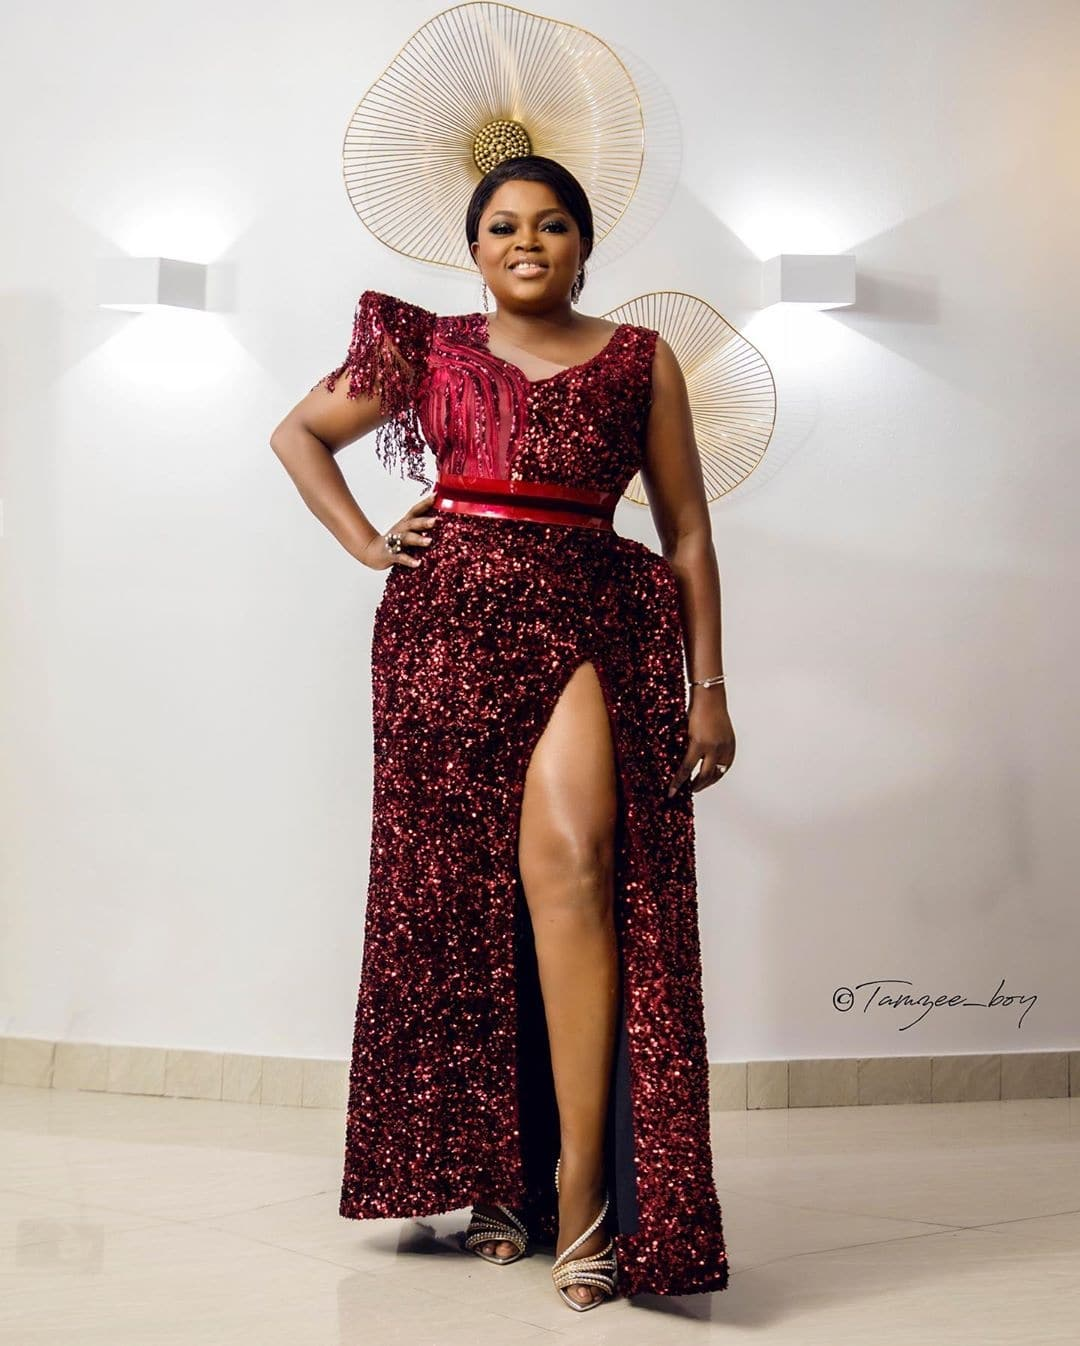 funke-akundele-ebony-life-films-tv-your-excellency-movie-premiere-inauguration-ball